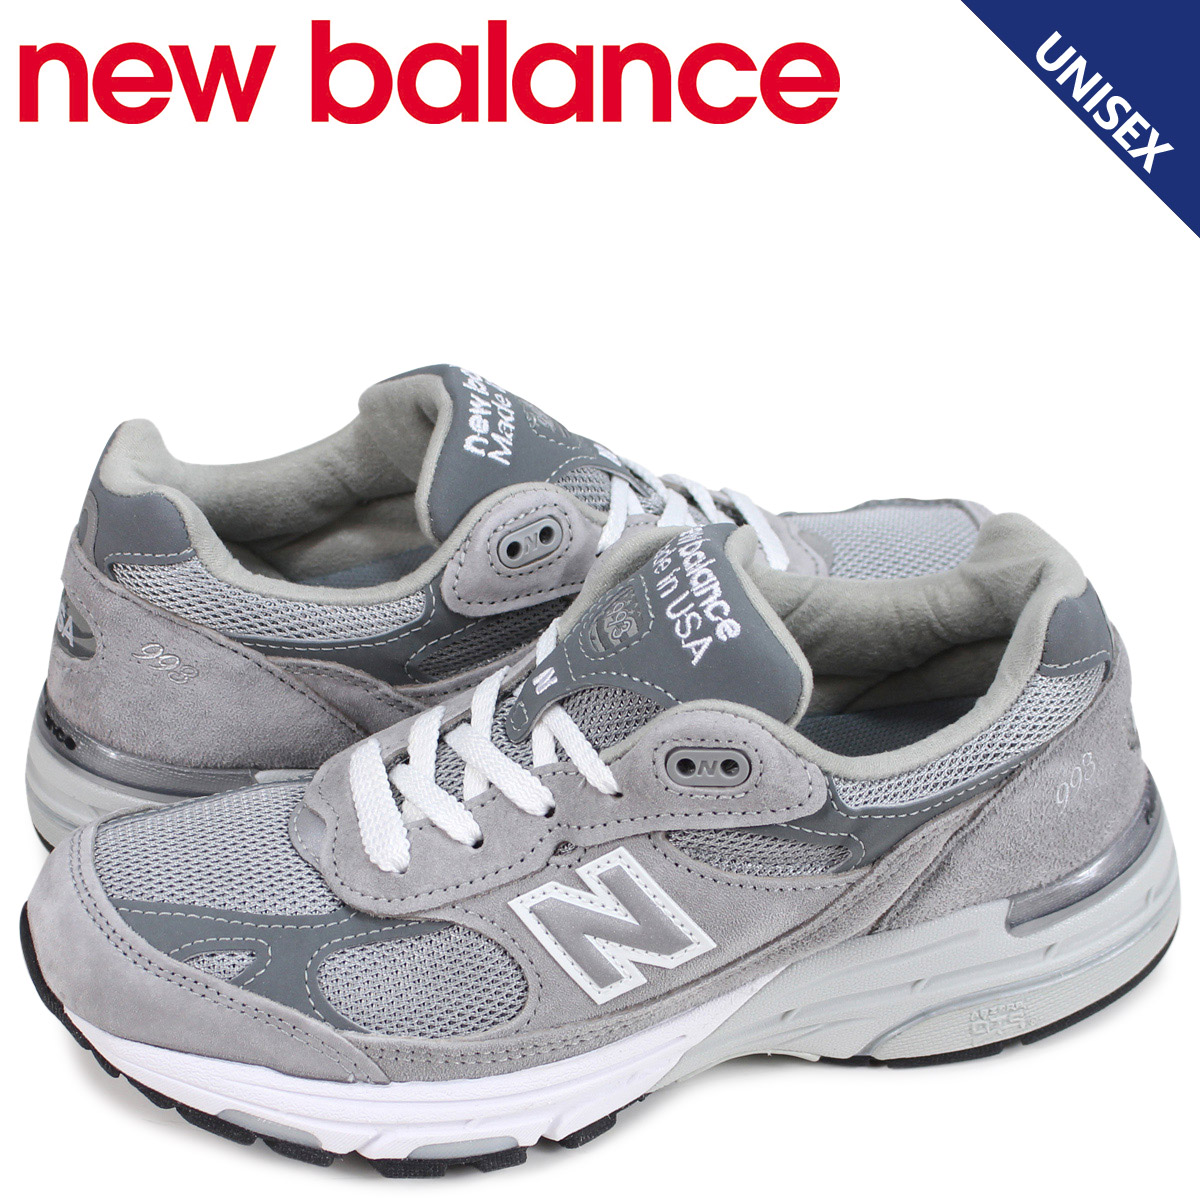 pas cher pour réduction 616db 16706 New Balance new balance 993 lady's men's sneakers gray WR993GL D Wise suede  mesh Made in USA suede cloth